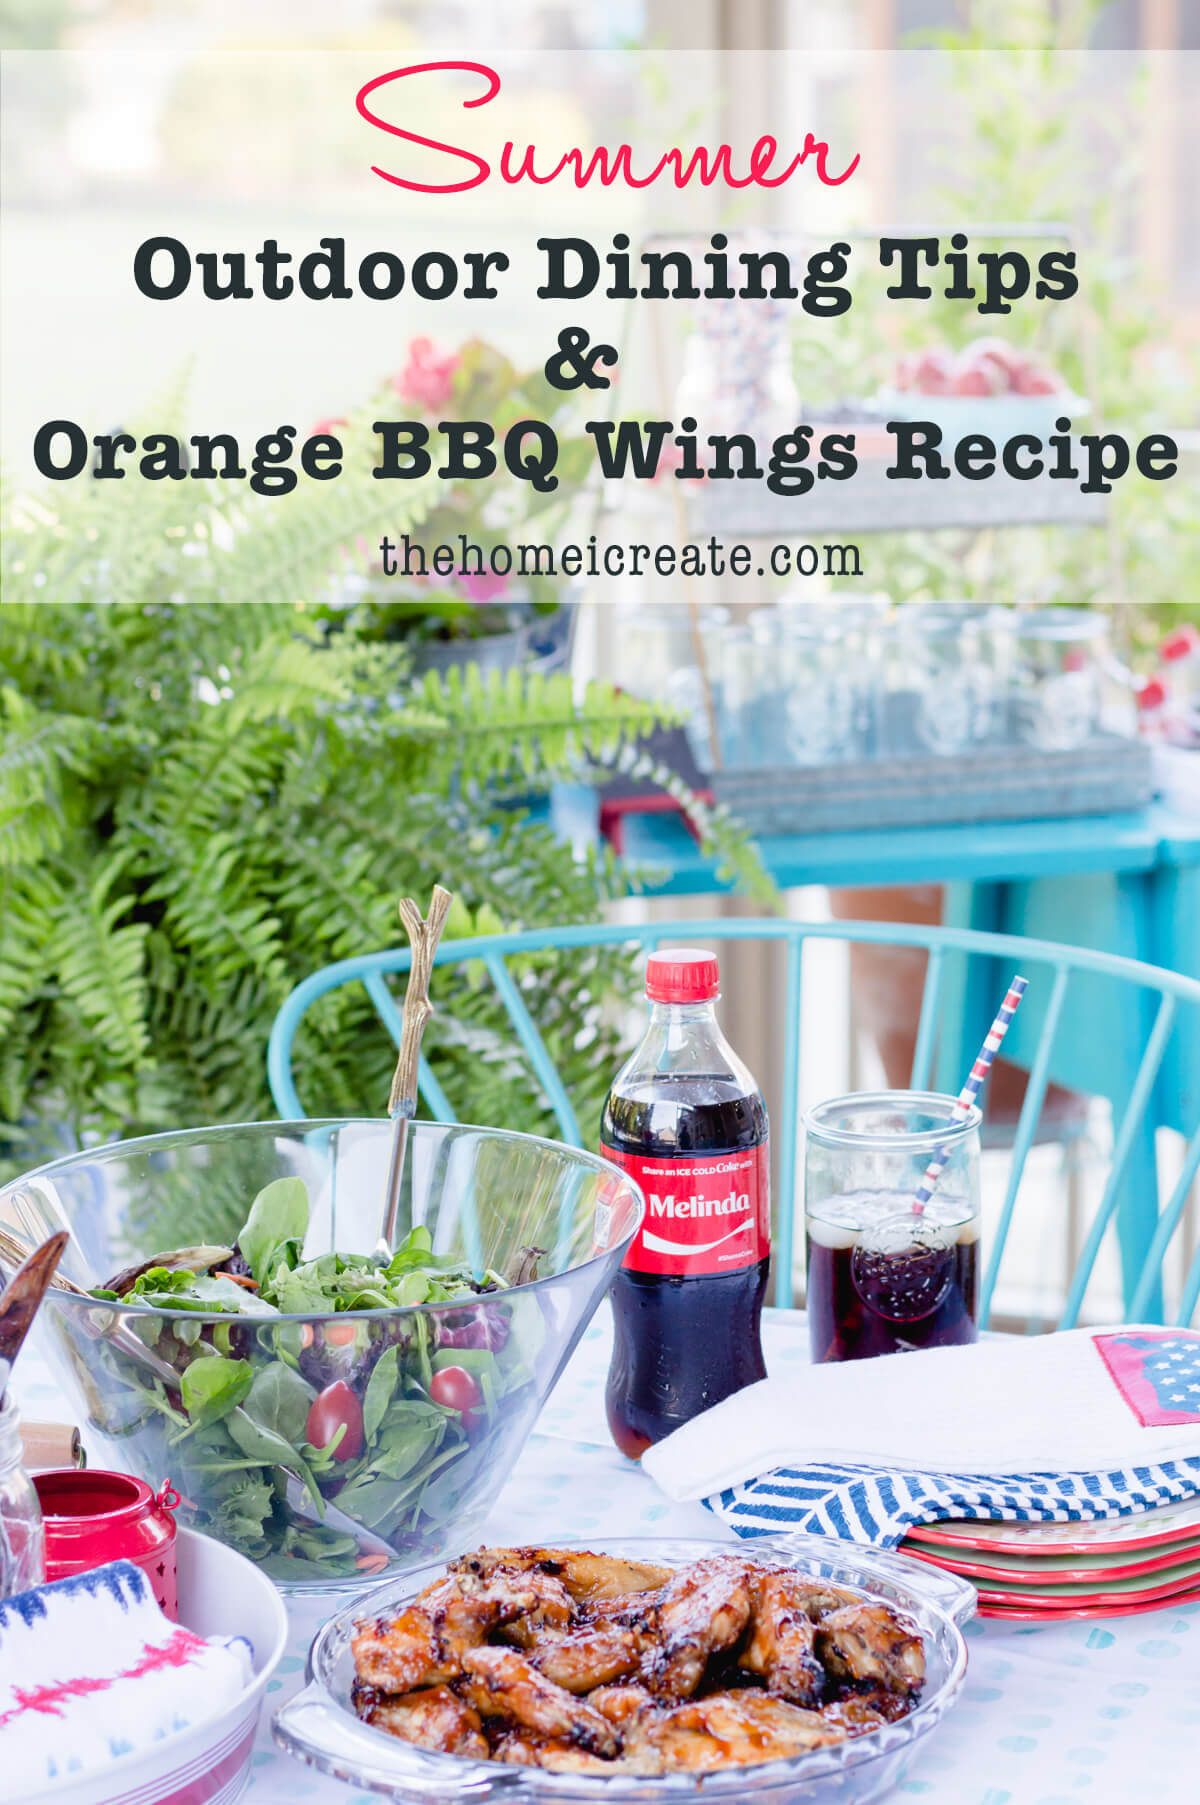 Casual summer outdoor dining with plus a delicious orange BBQ chicken wings recipe | thehomeicreate.com